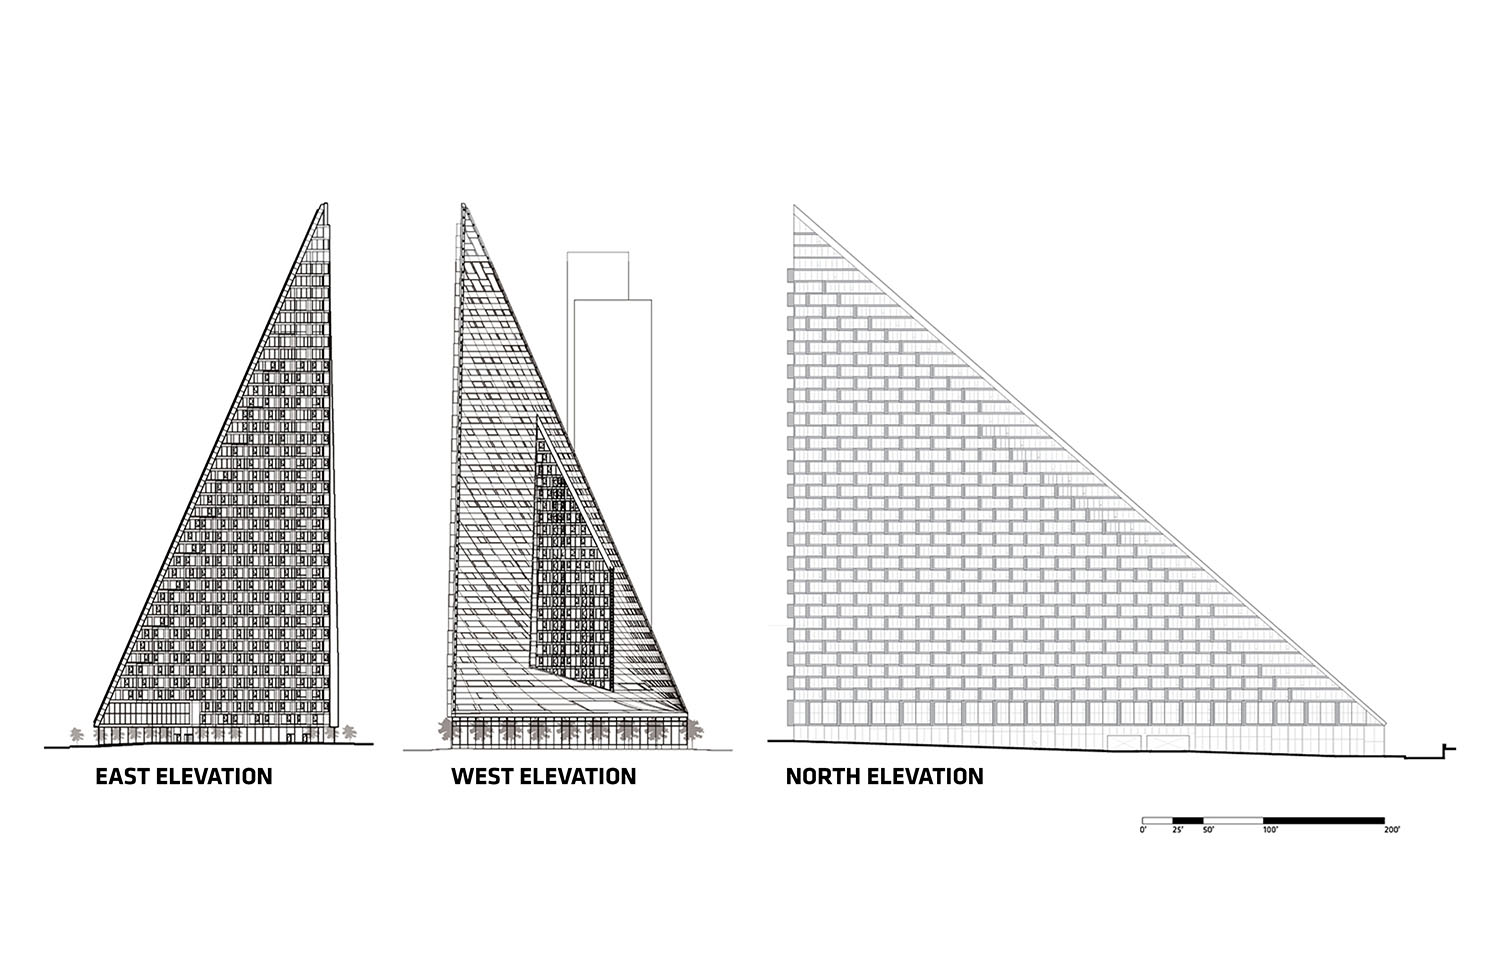 East, west, and north elevations }